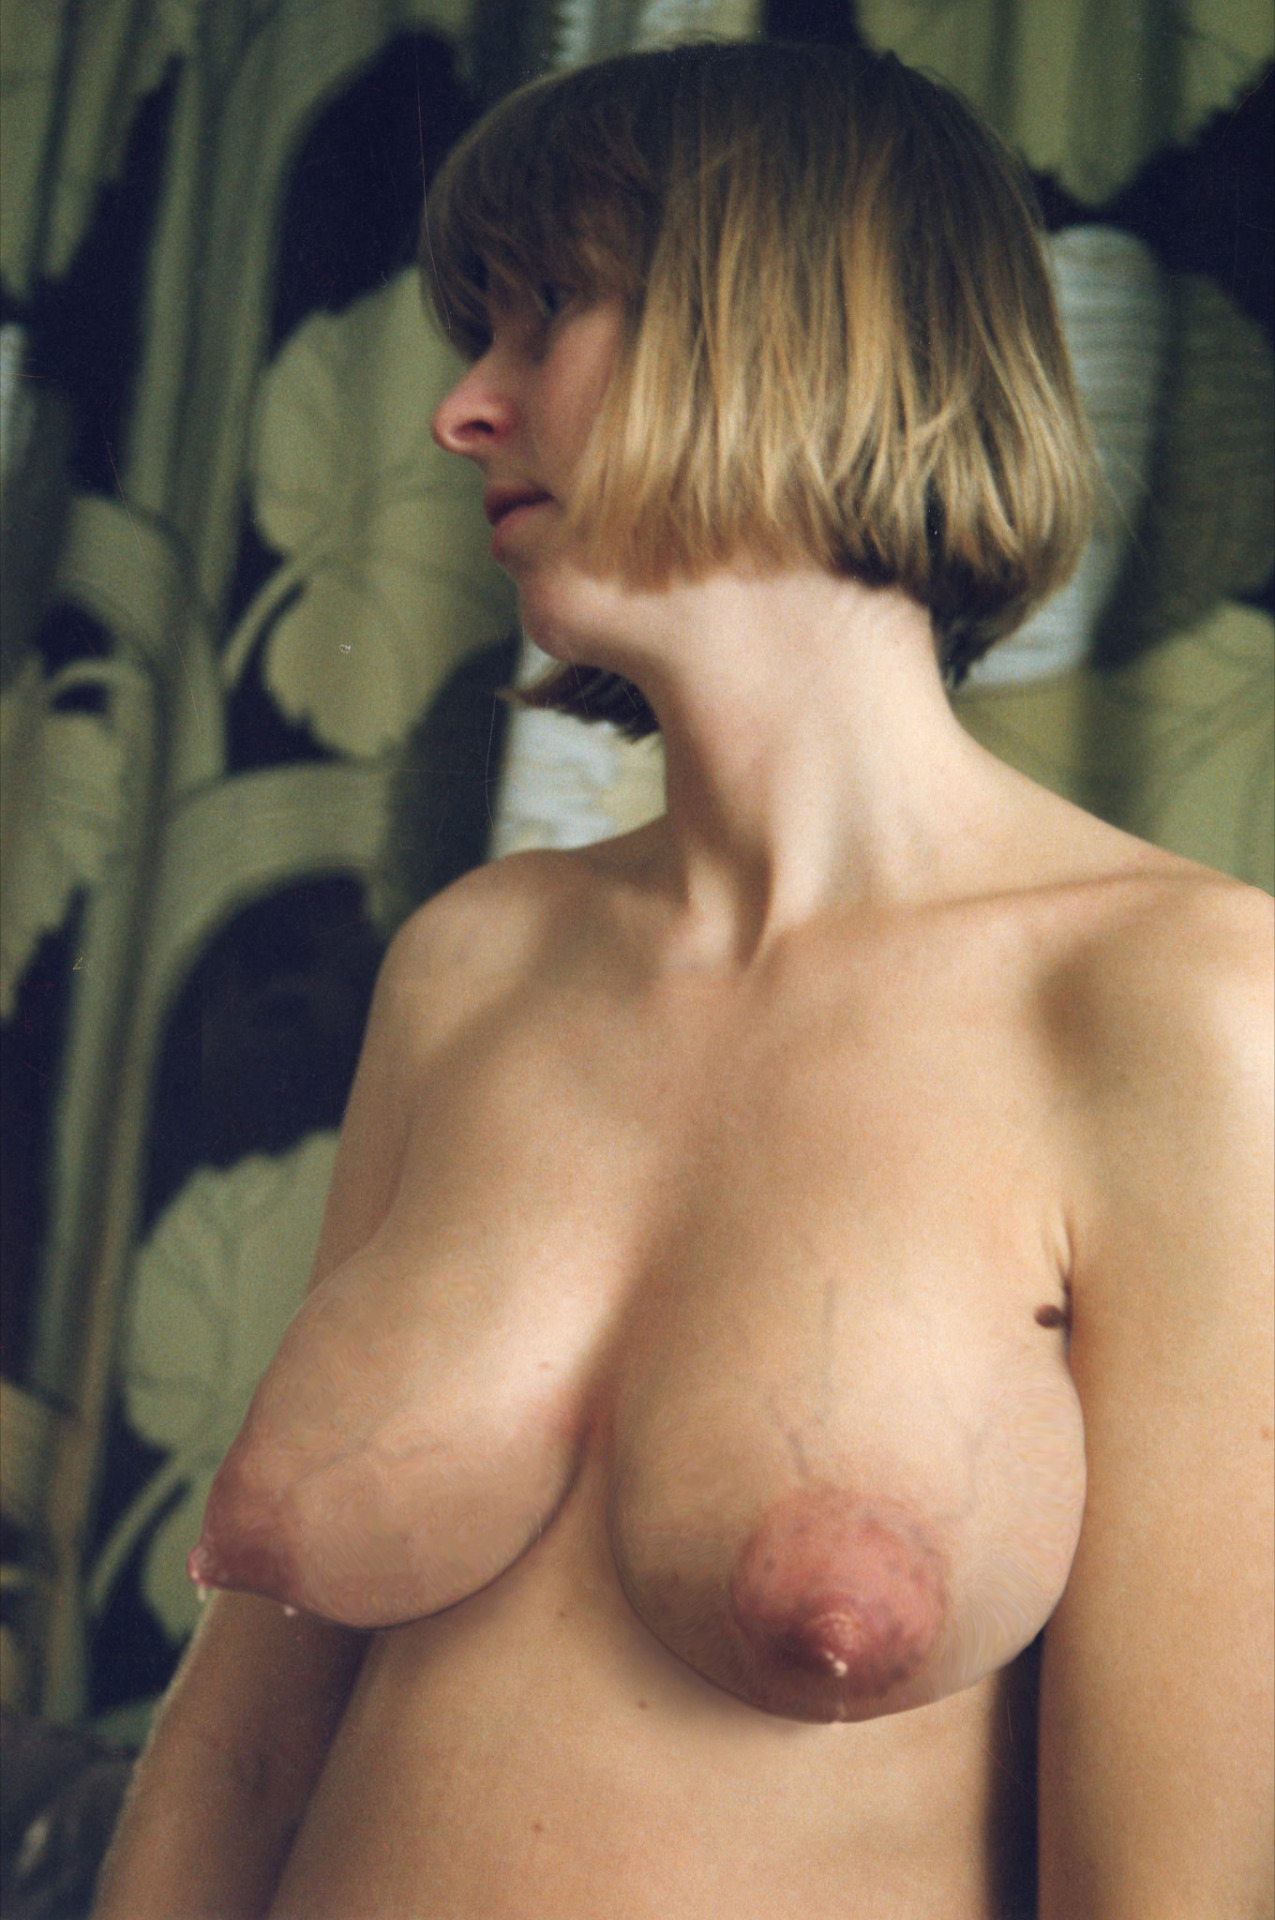 tits leaking Veiny tits tumblr xxx - Veiny tits tumblr xxx jpg 1275x1920